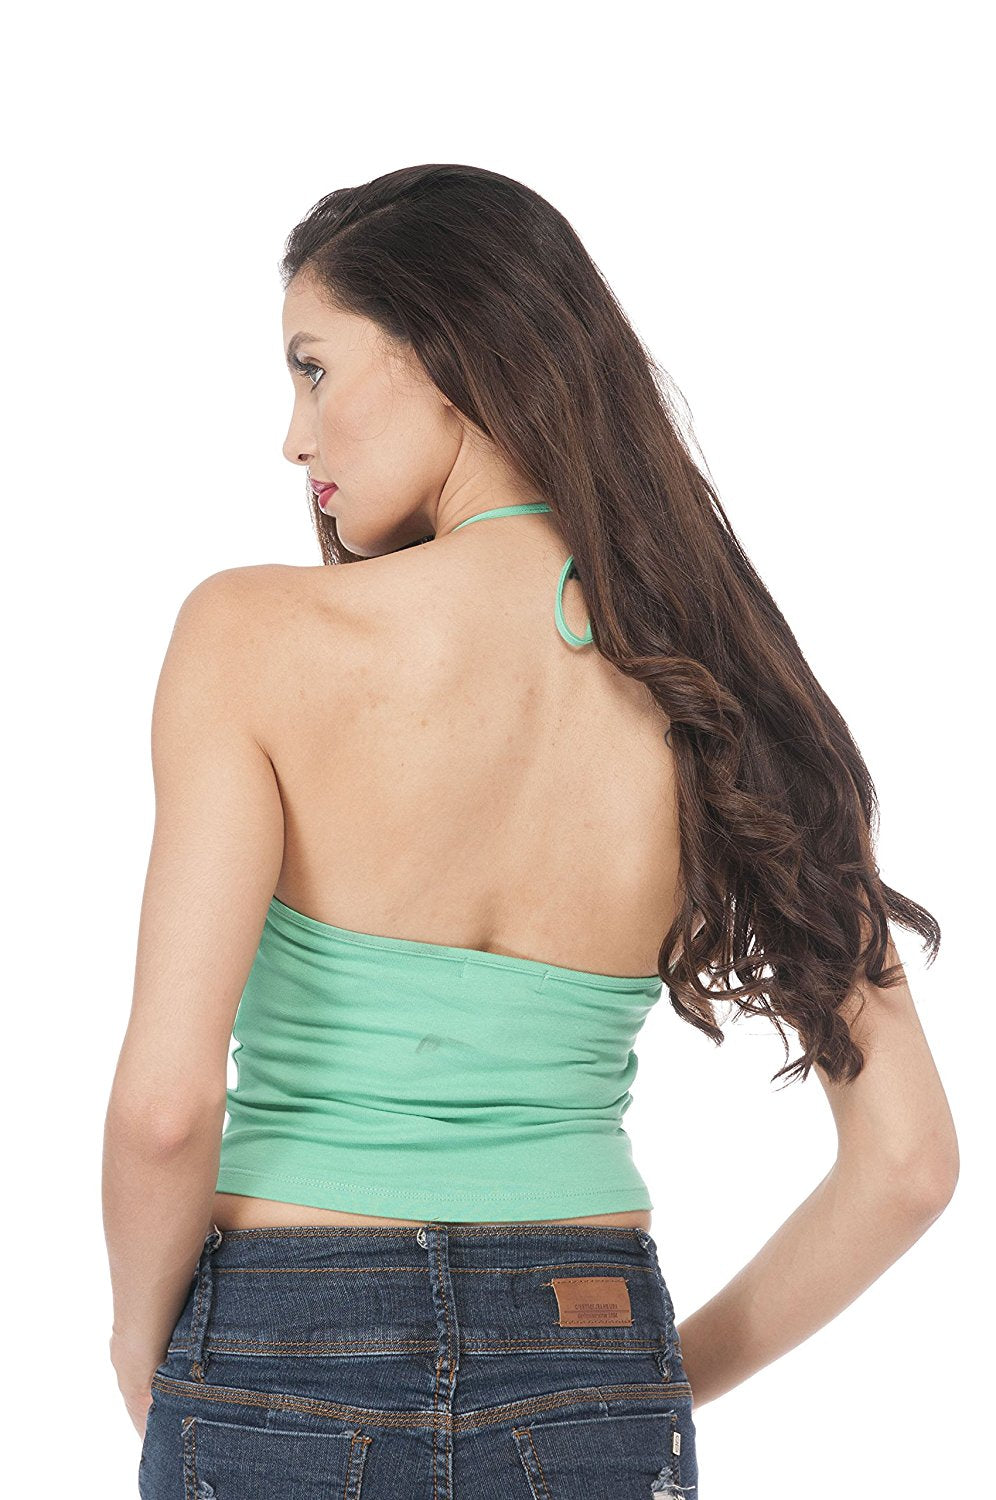 Hollywood Star Fashion High Halter Neck Open Back Crop Top